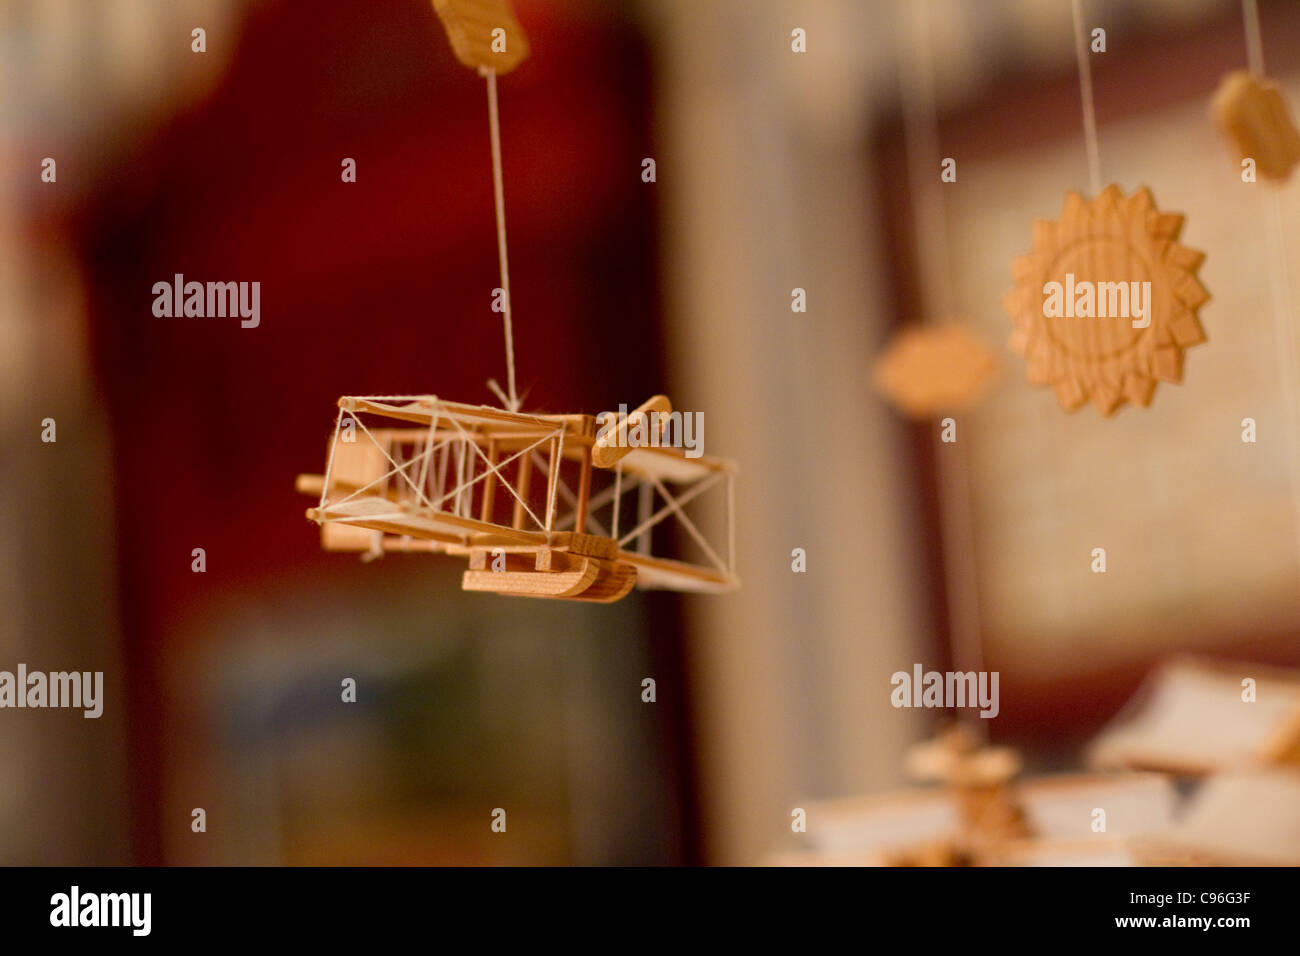 A wooden bi-plane hanging from a mobile in a children's bedroom. - Stock Image